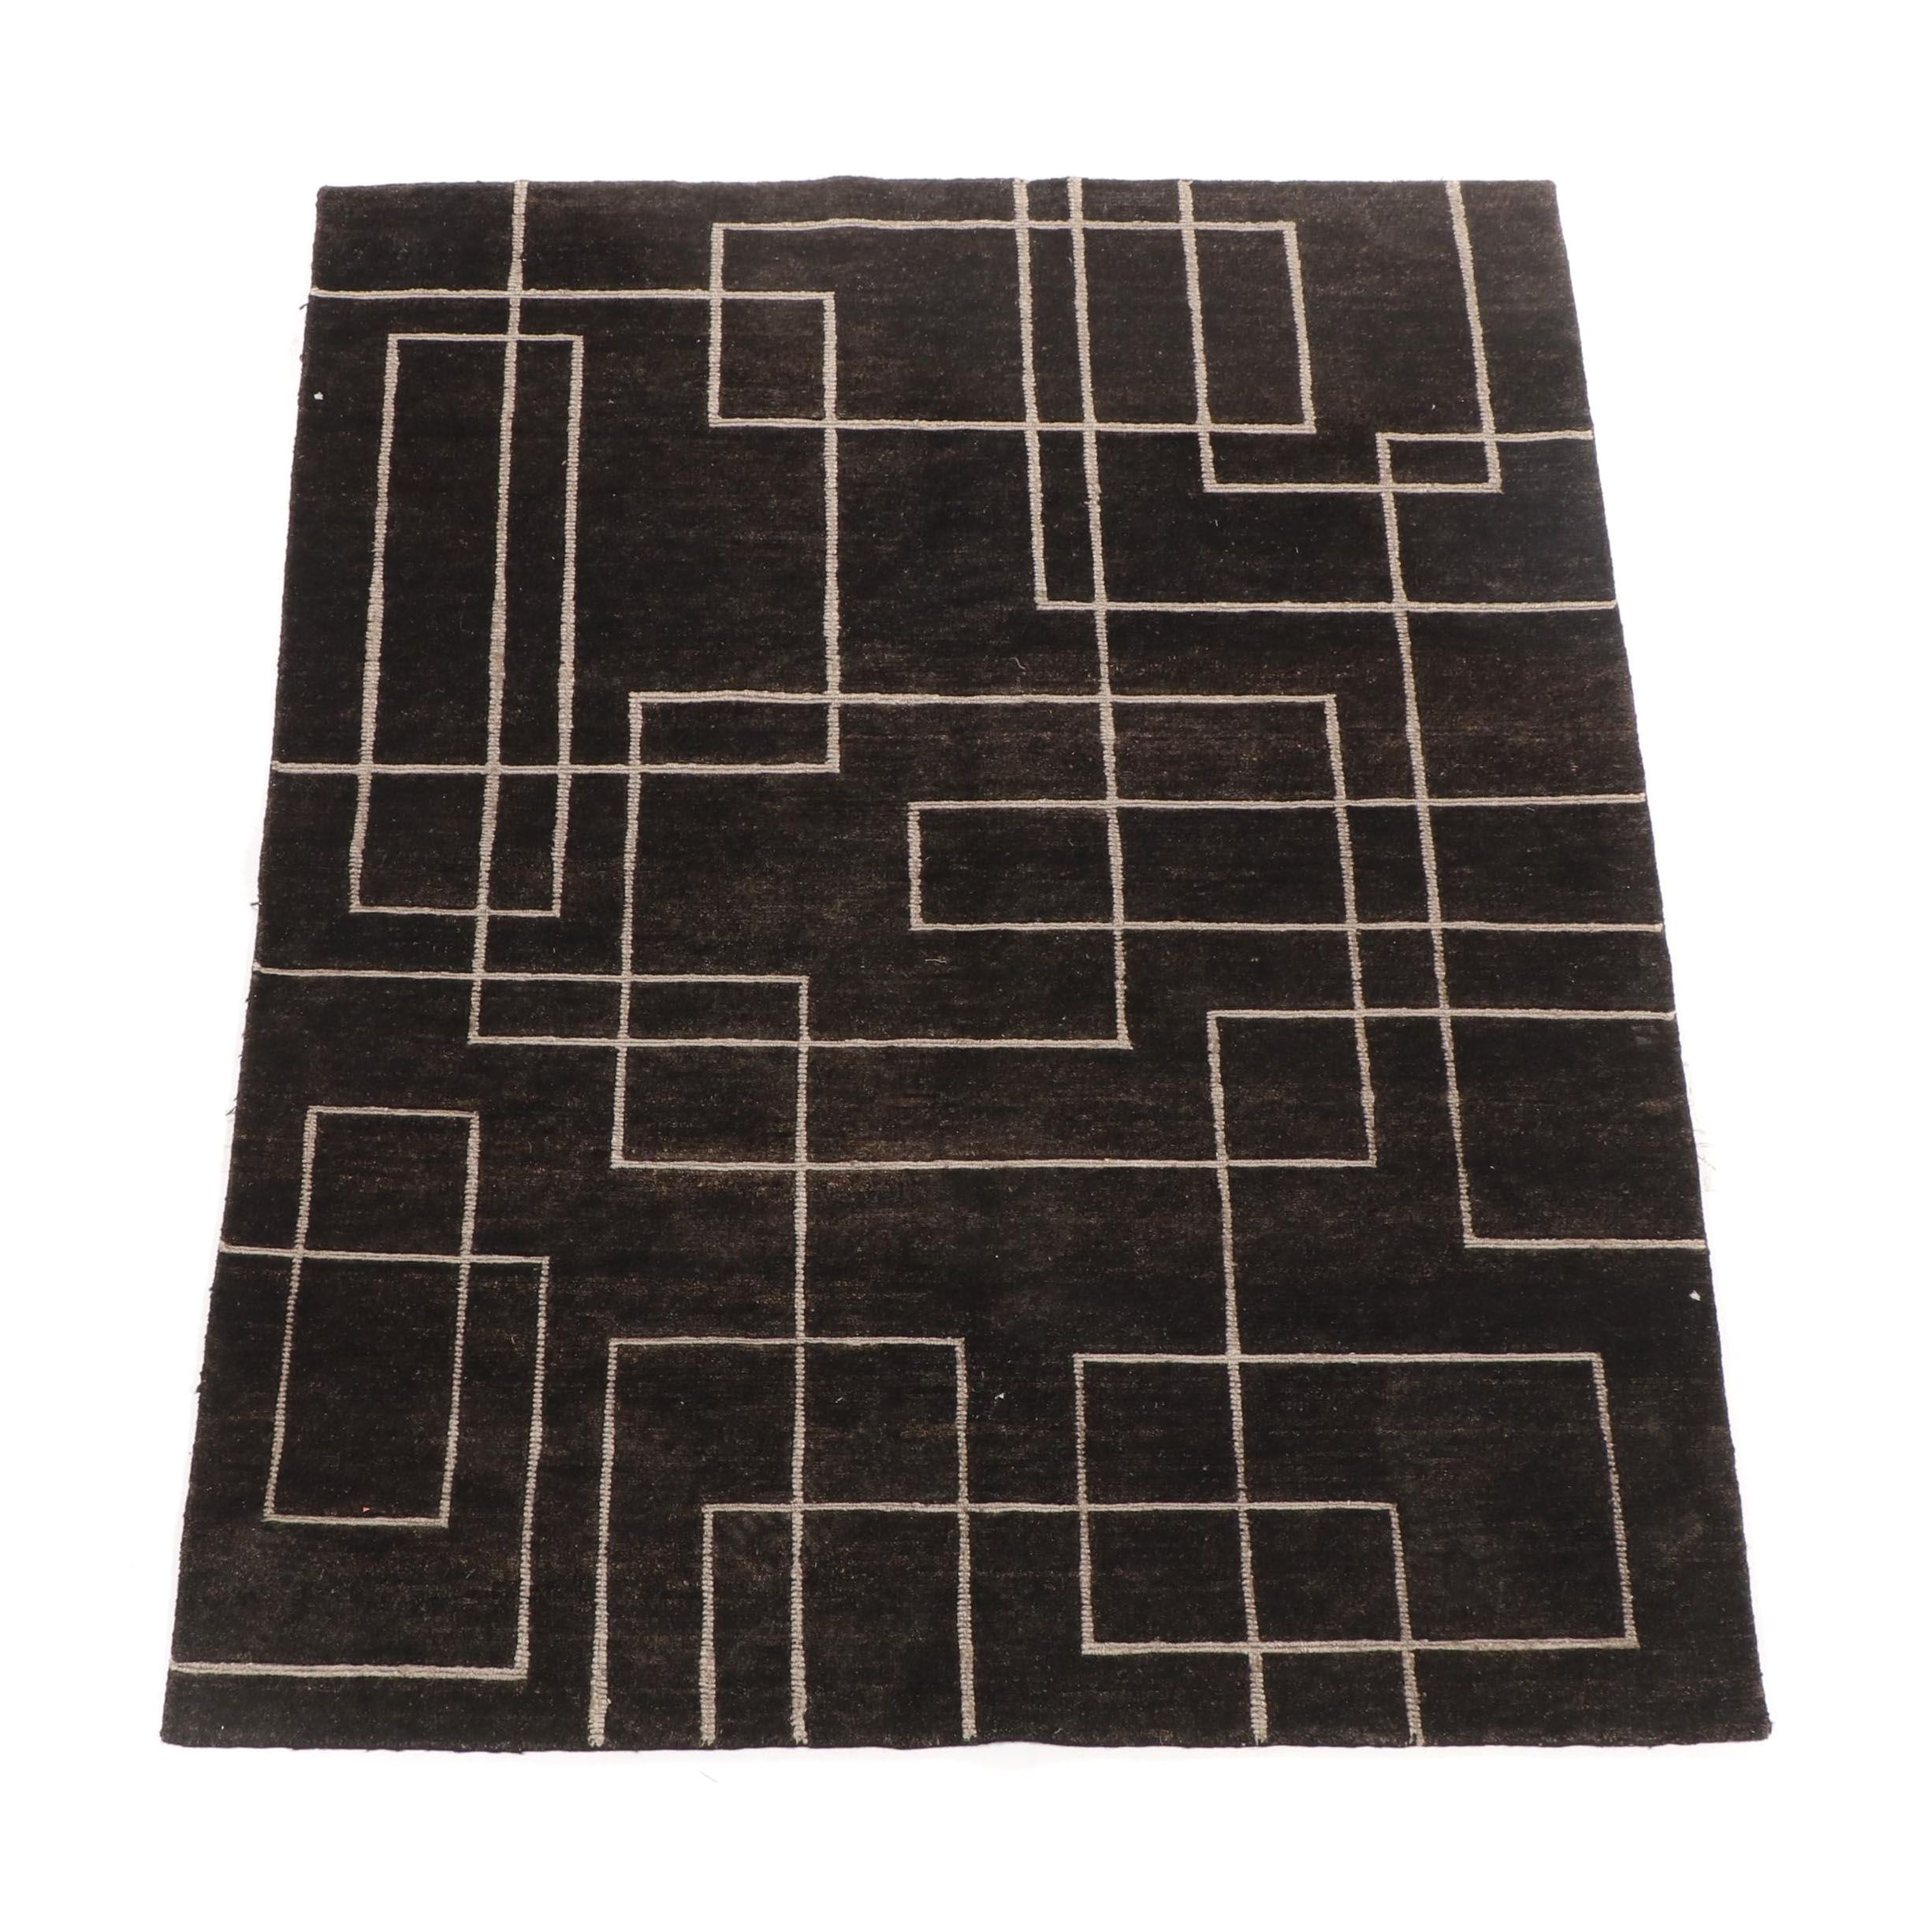 Hand-Knotted Indo-Tibetan Wool Rug from Oscar Isberian